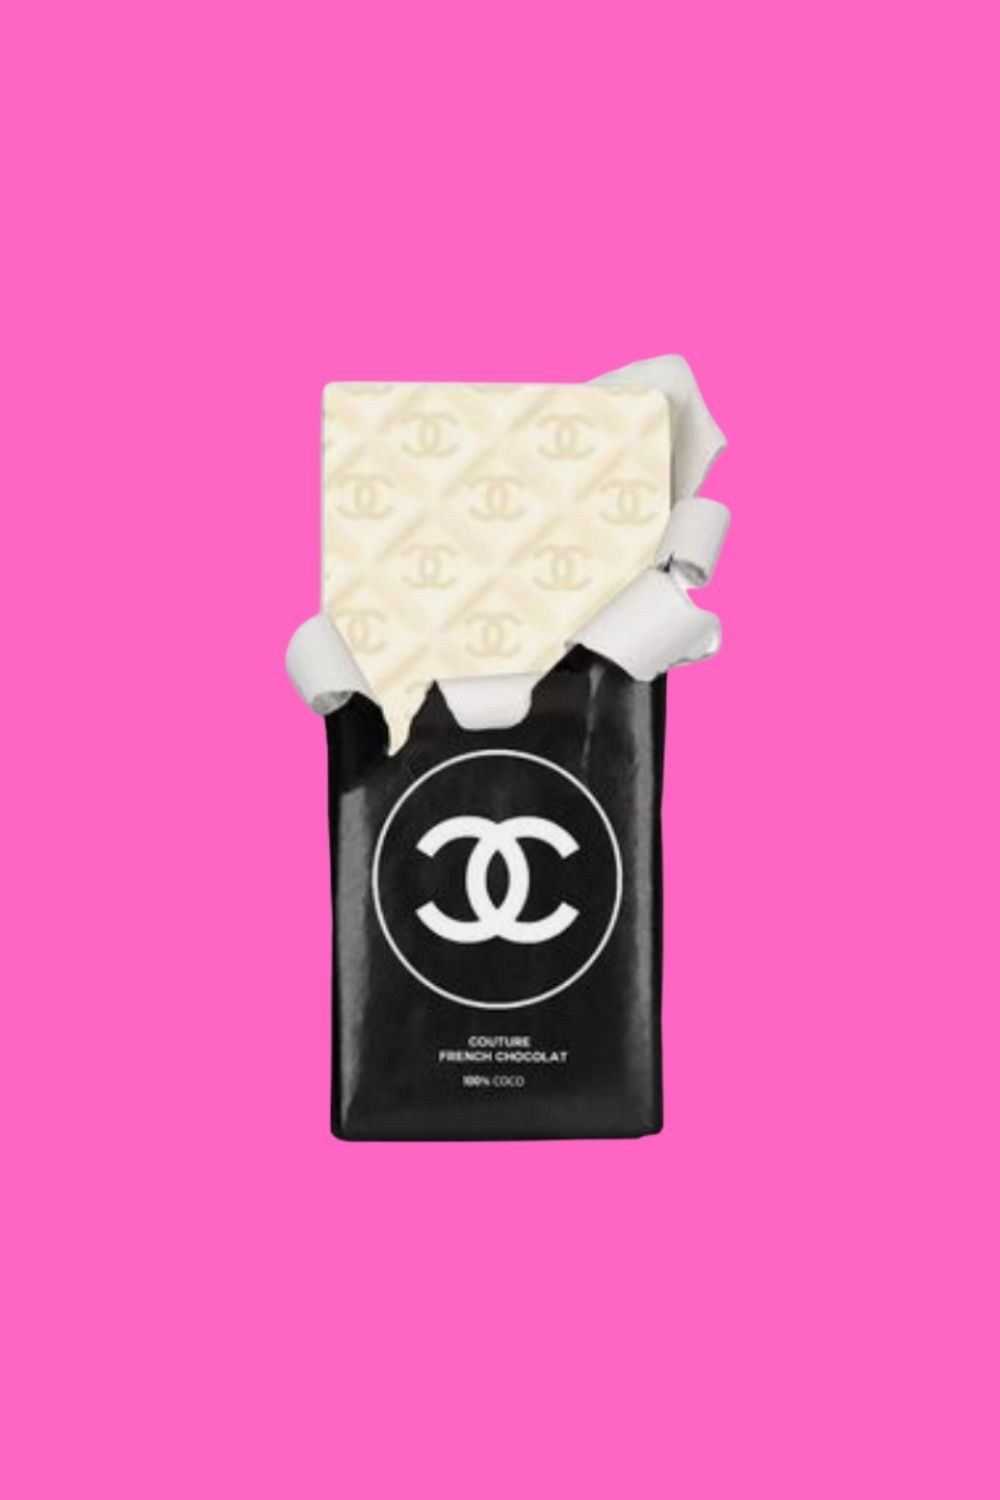 Chanel wallpapers for iPhone